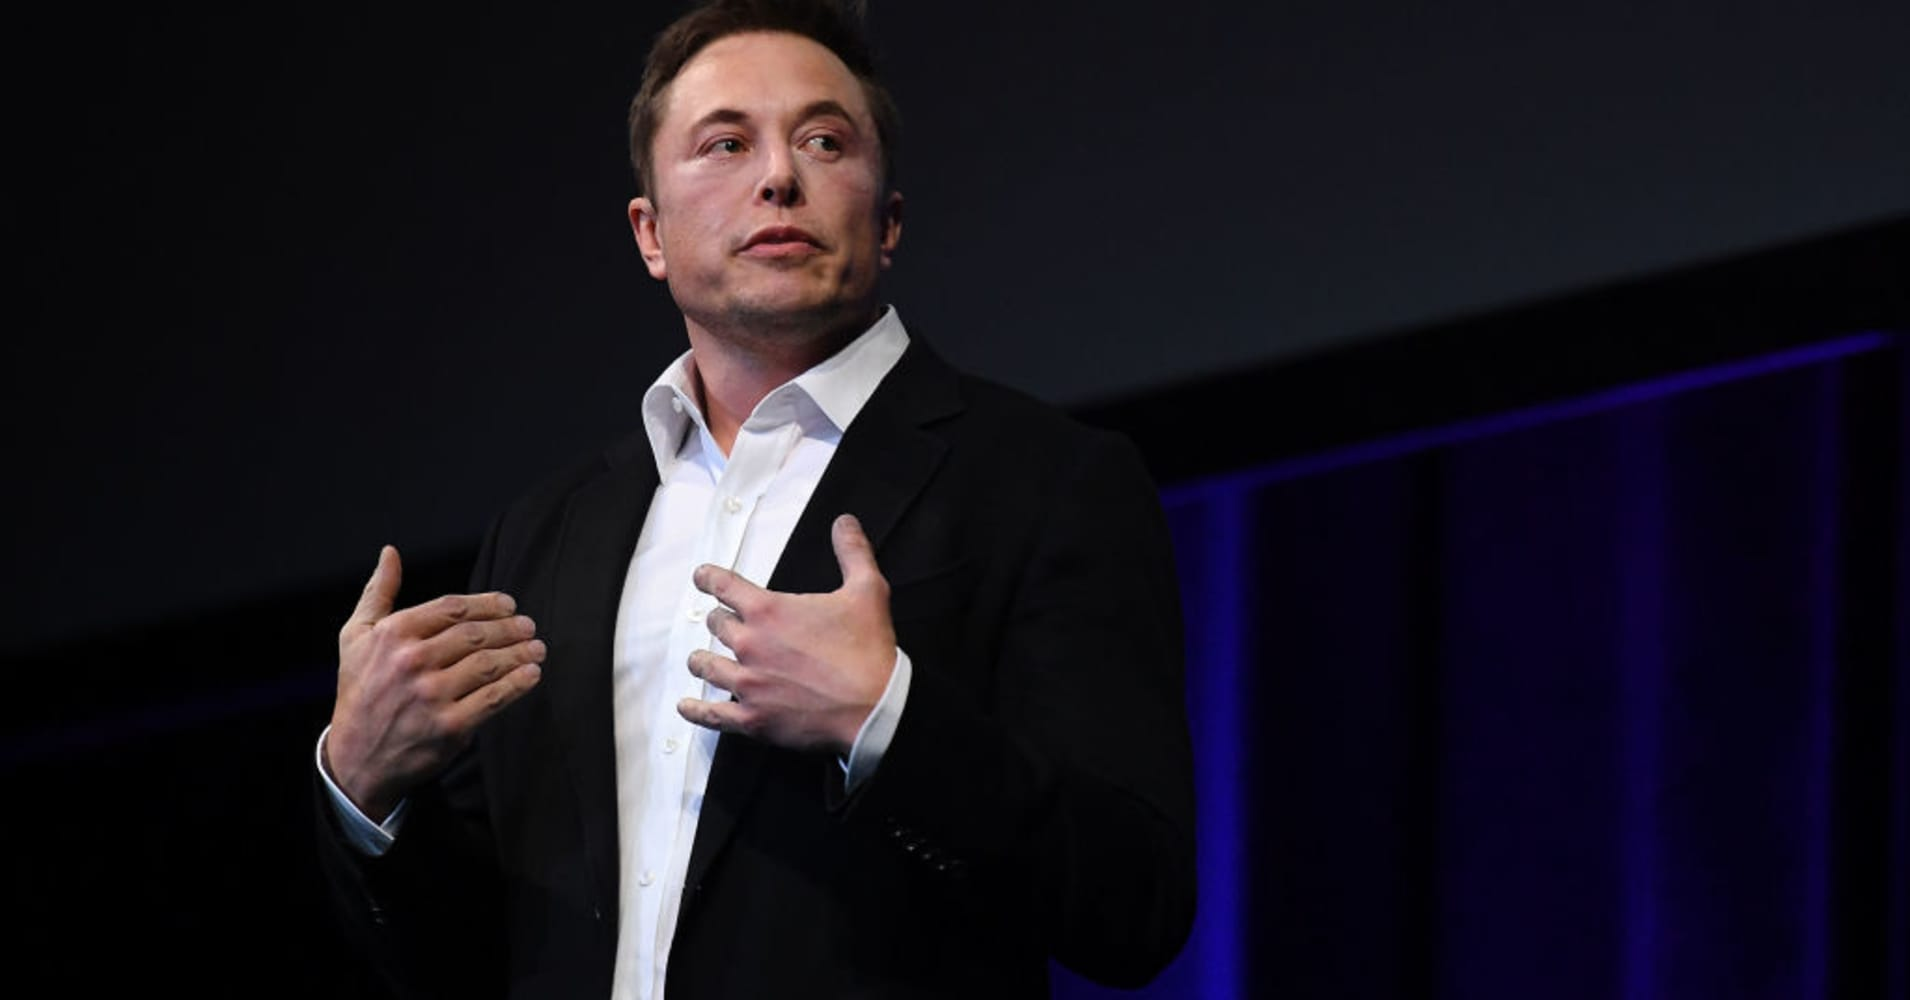 Musk's SpaceX plans cargo trips to Mars by 2022, humans by 2024